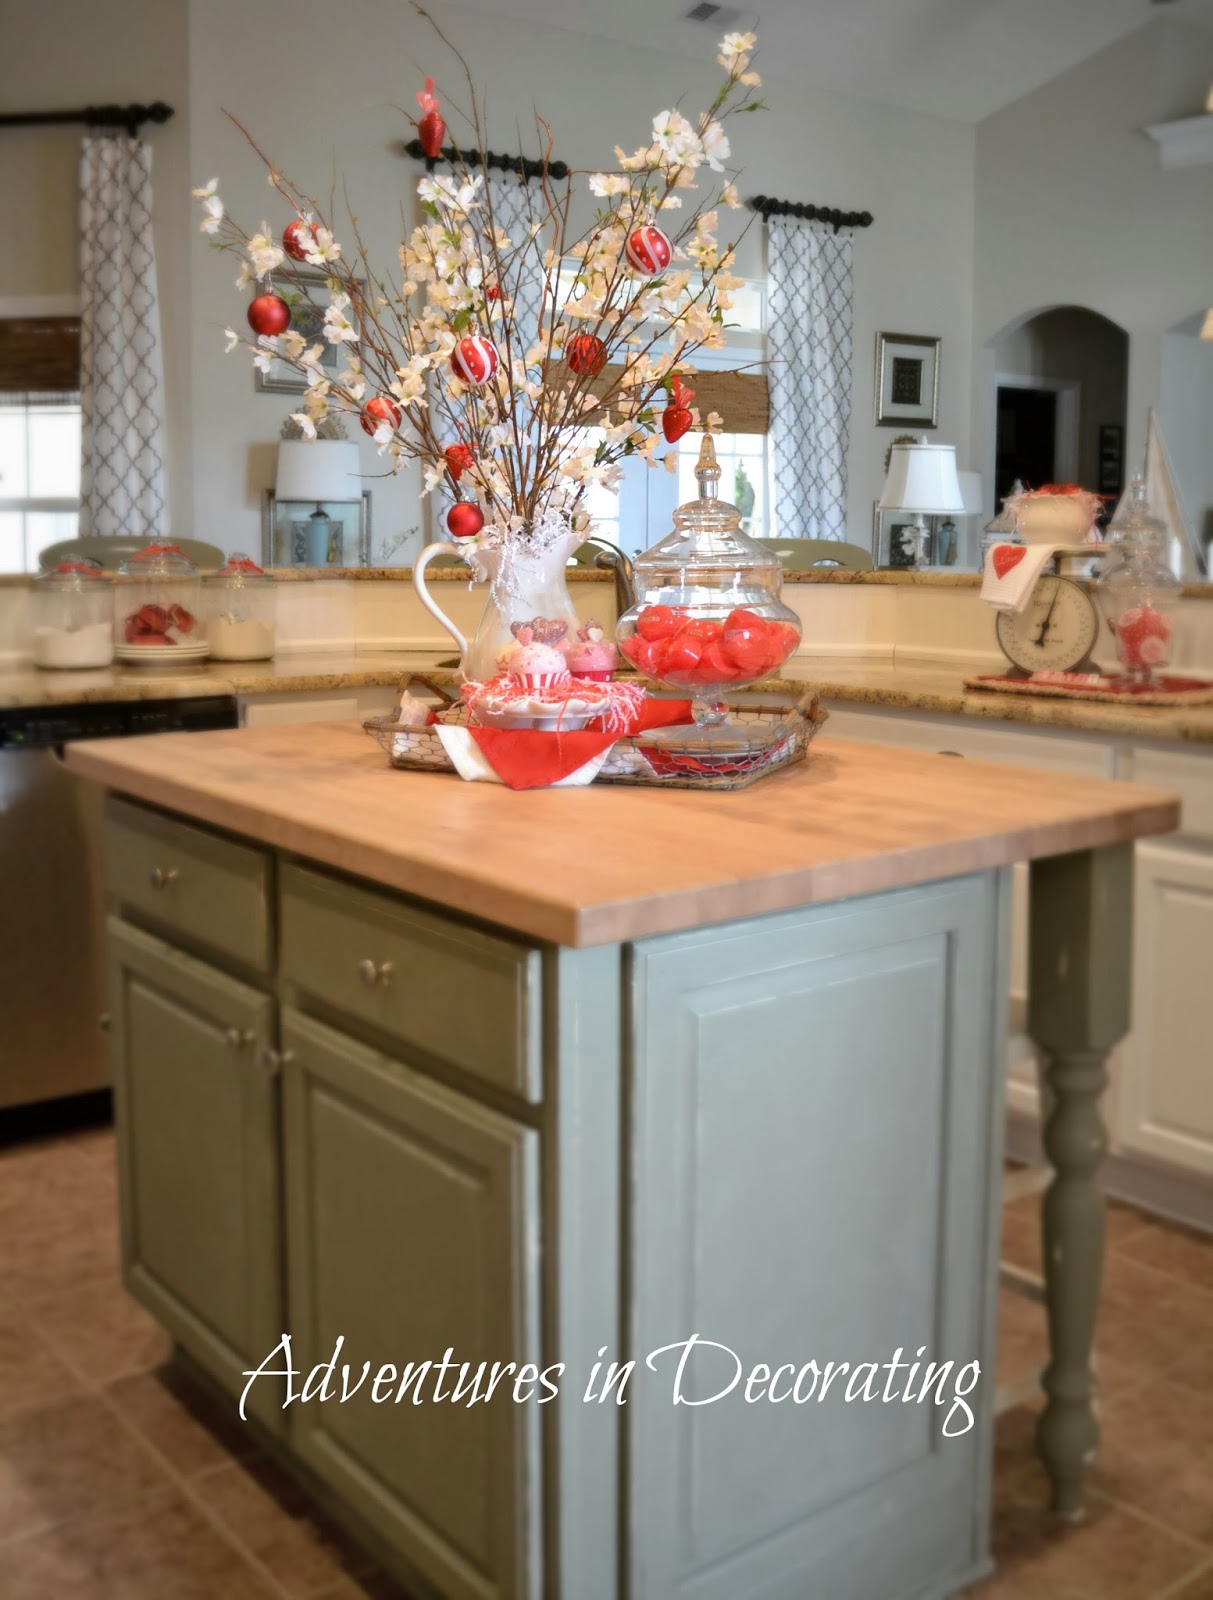 Adventures In Decorating Our Fall Kitchen: Adventures In Decorating: Our Valentine Kitchen